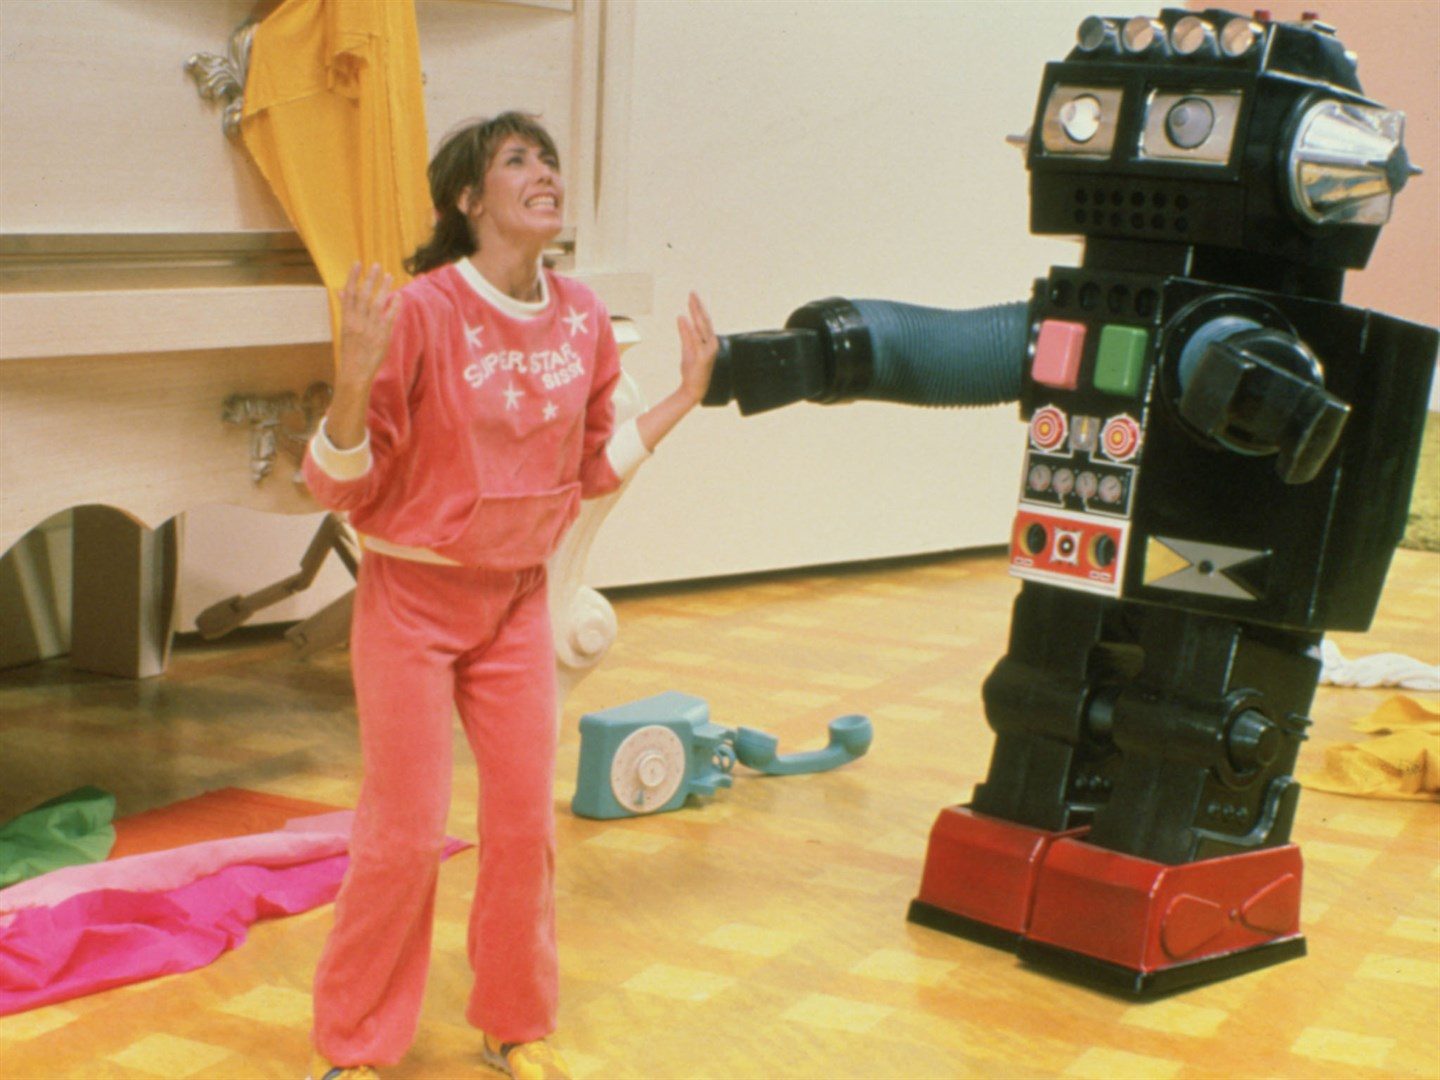 Shrunken housewife Pat Kramer (Lily Tomlin) and toy robot in The Incredible Shrinking Woman (1981)